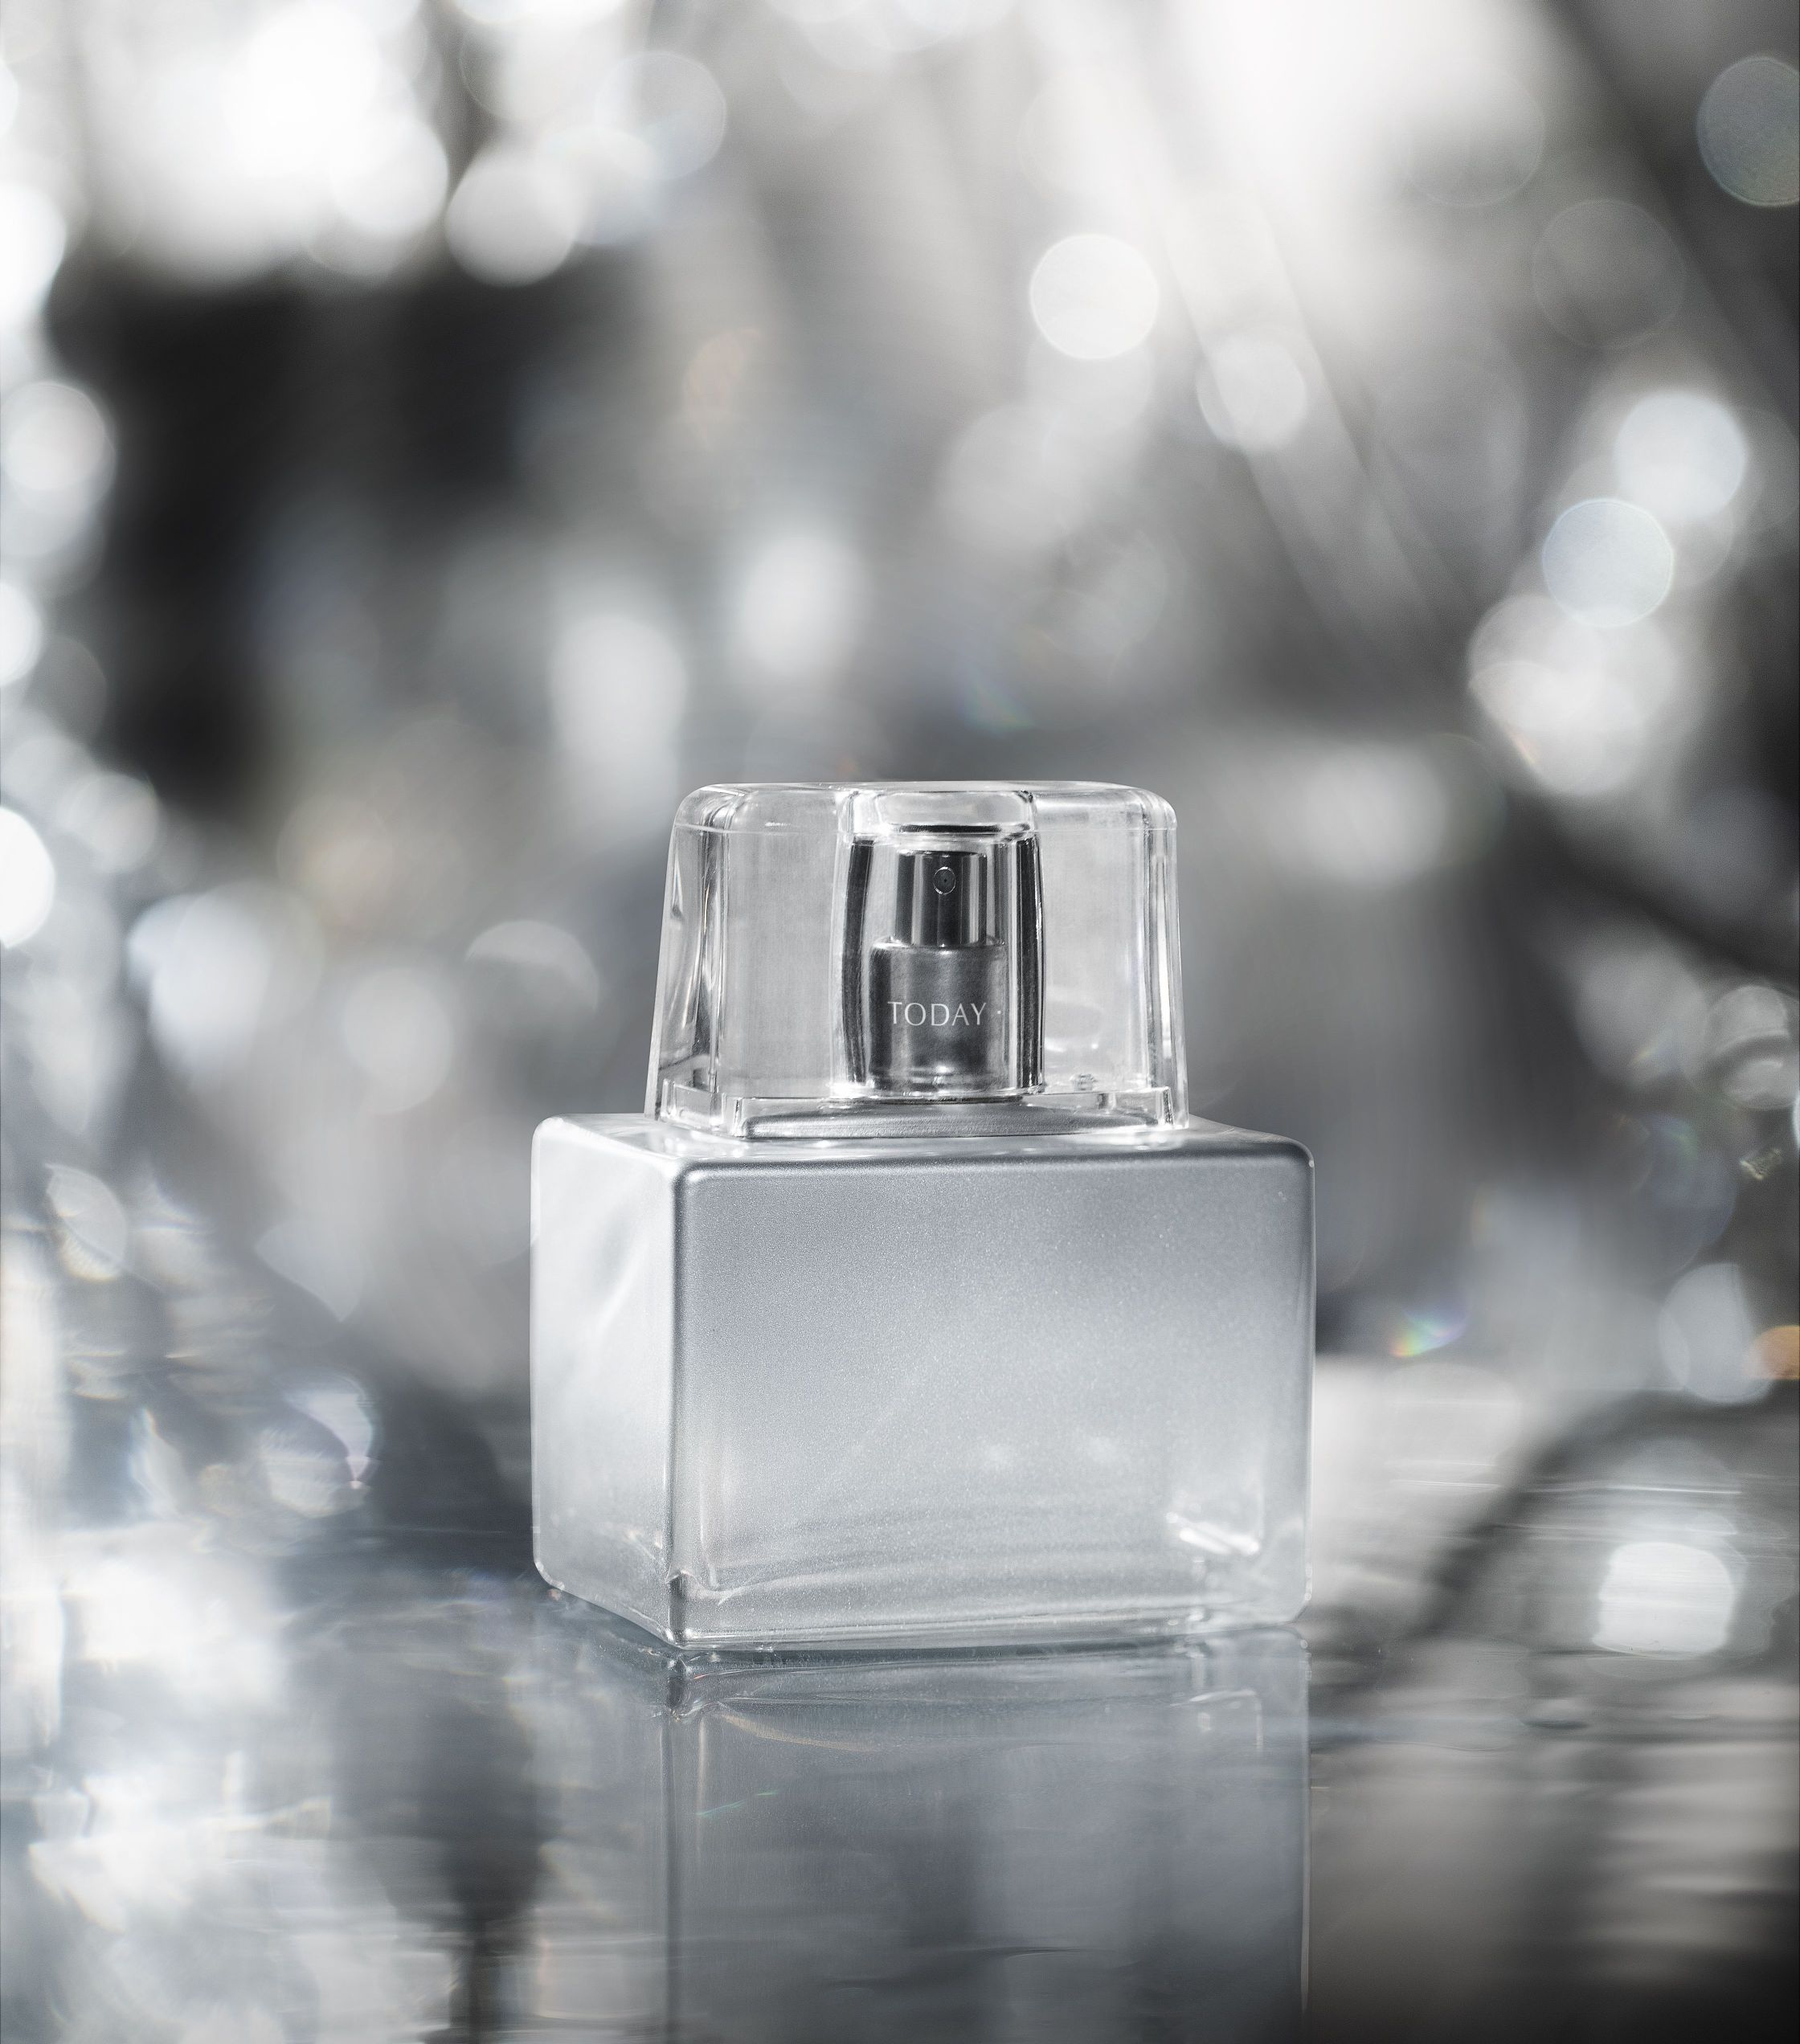 Perfumes from Avon's favorite fragrance line that celebrates 15 years of success